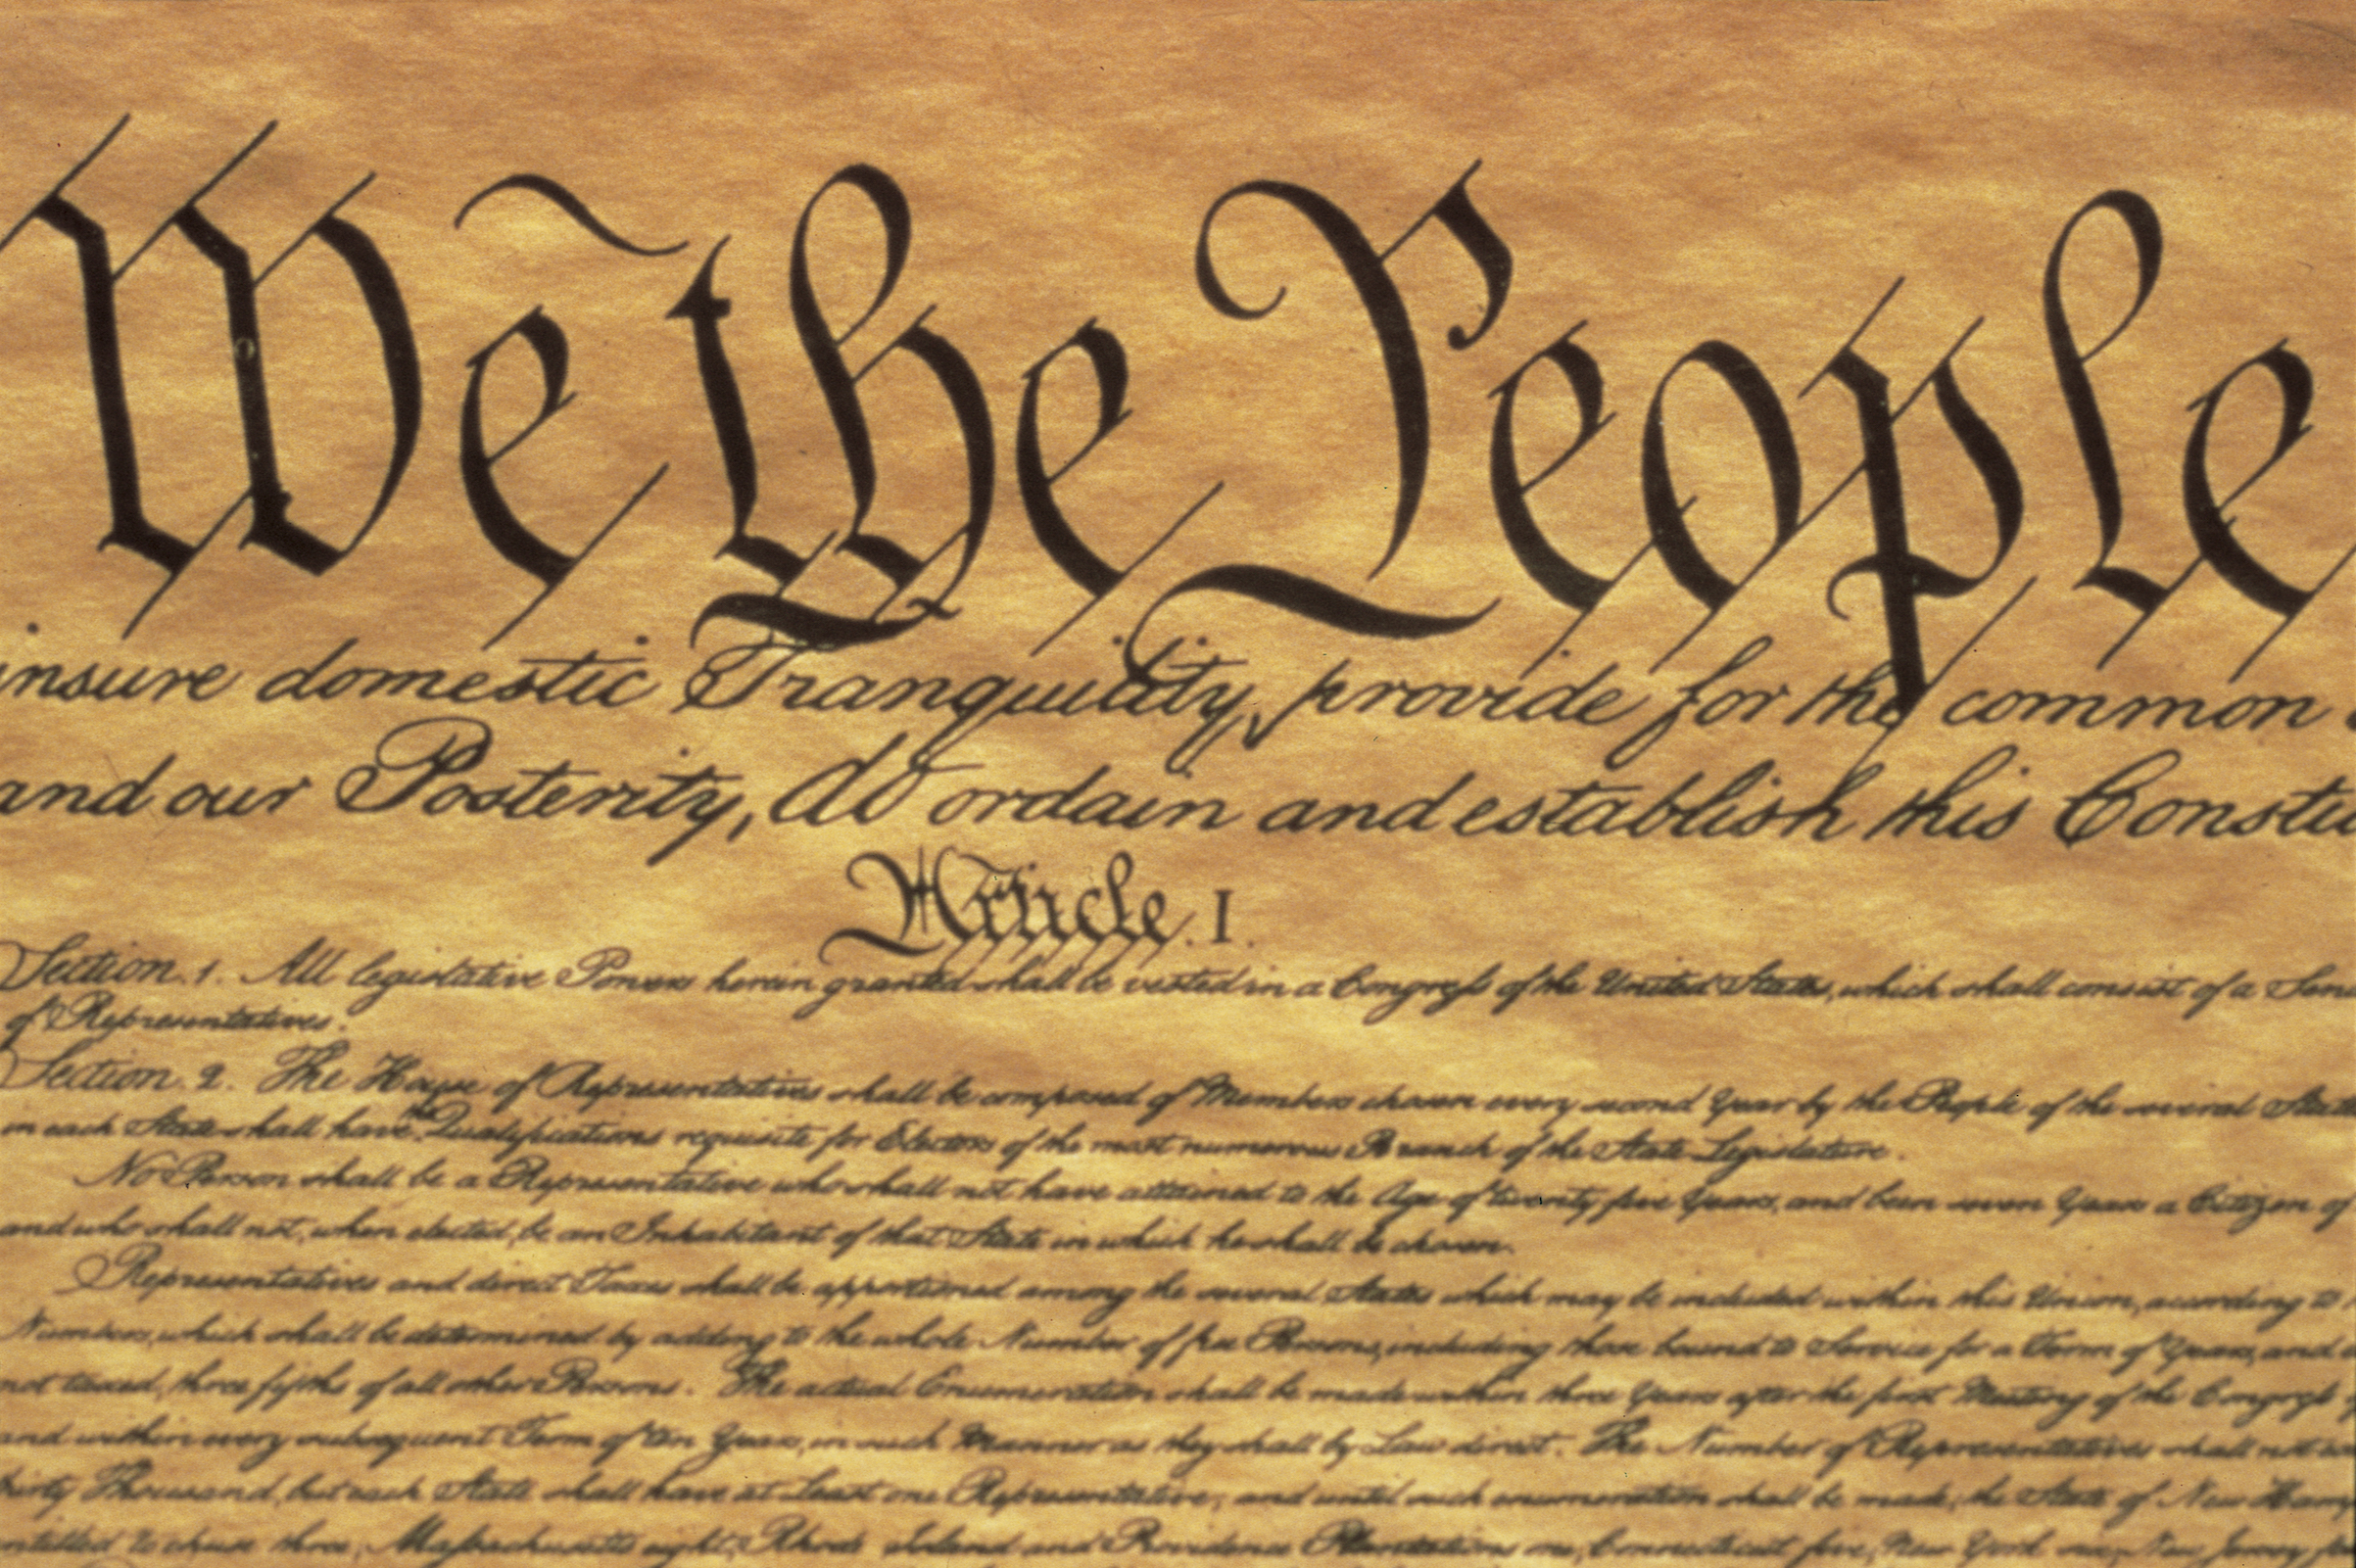 The Preamble to the US Constitution